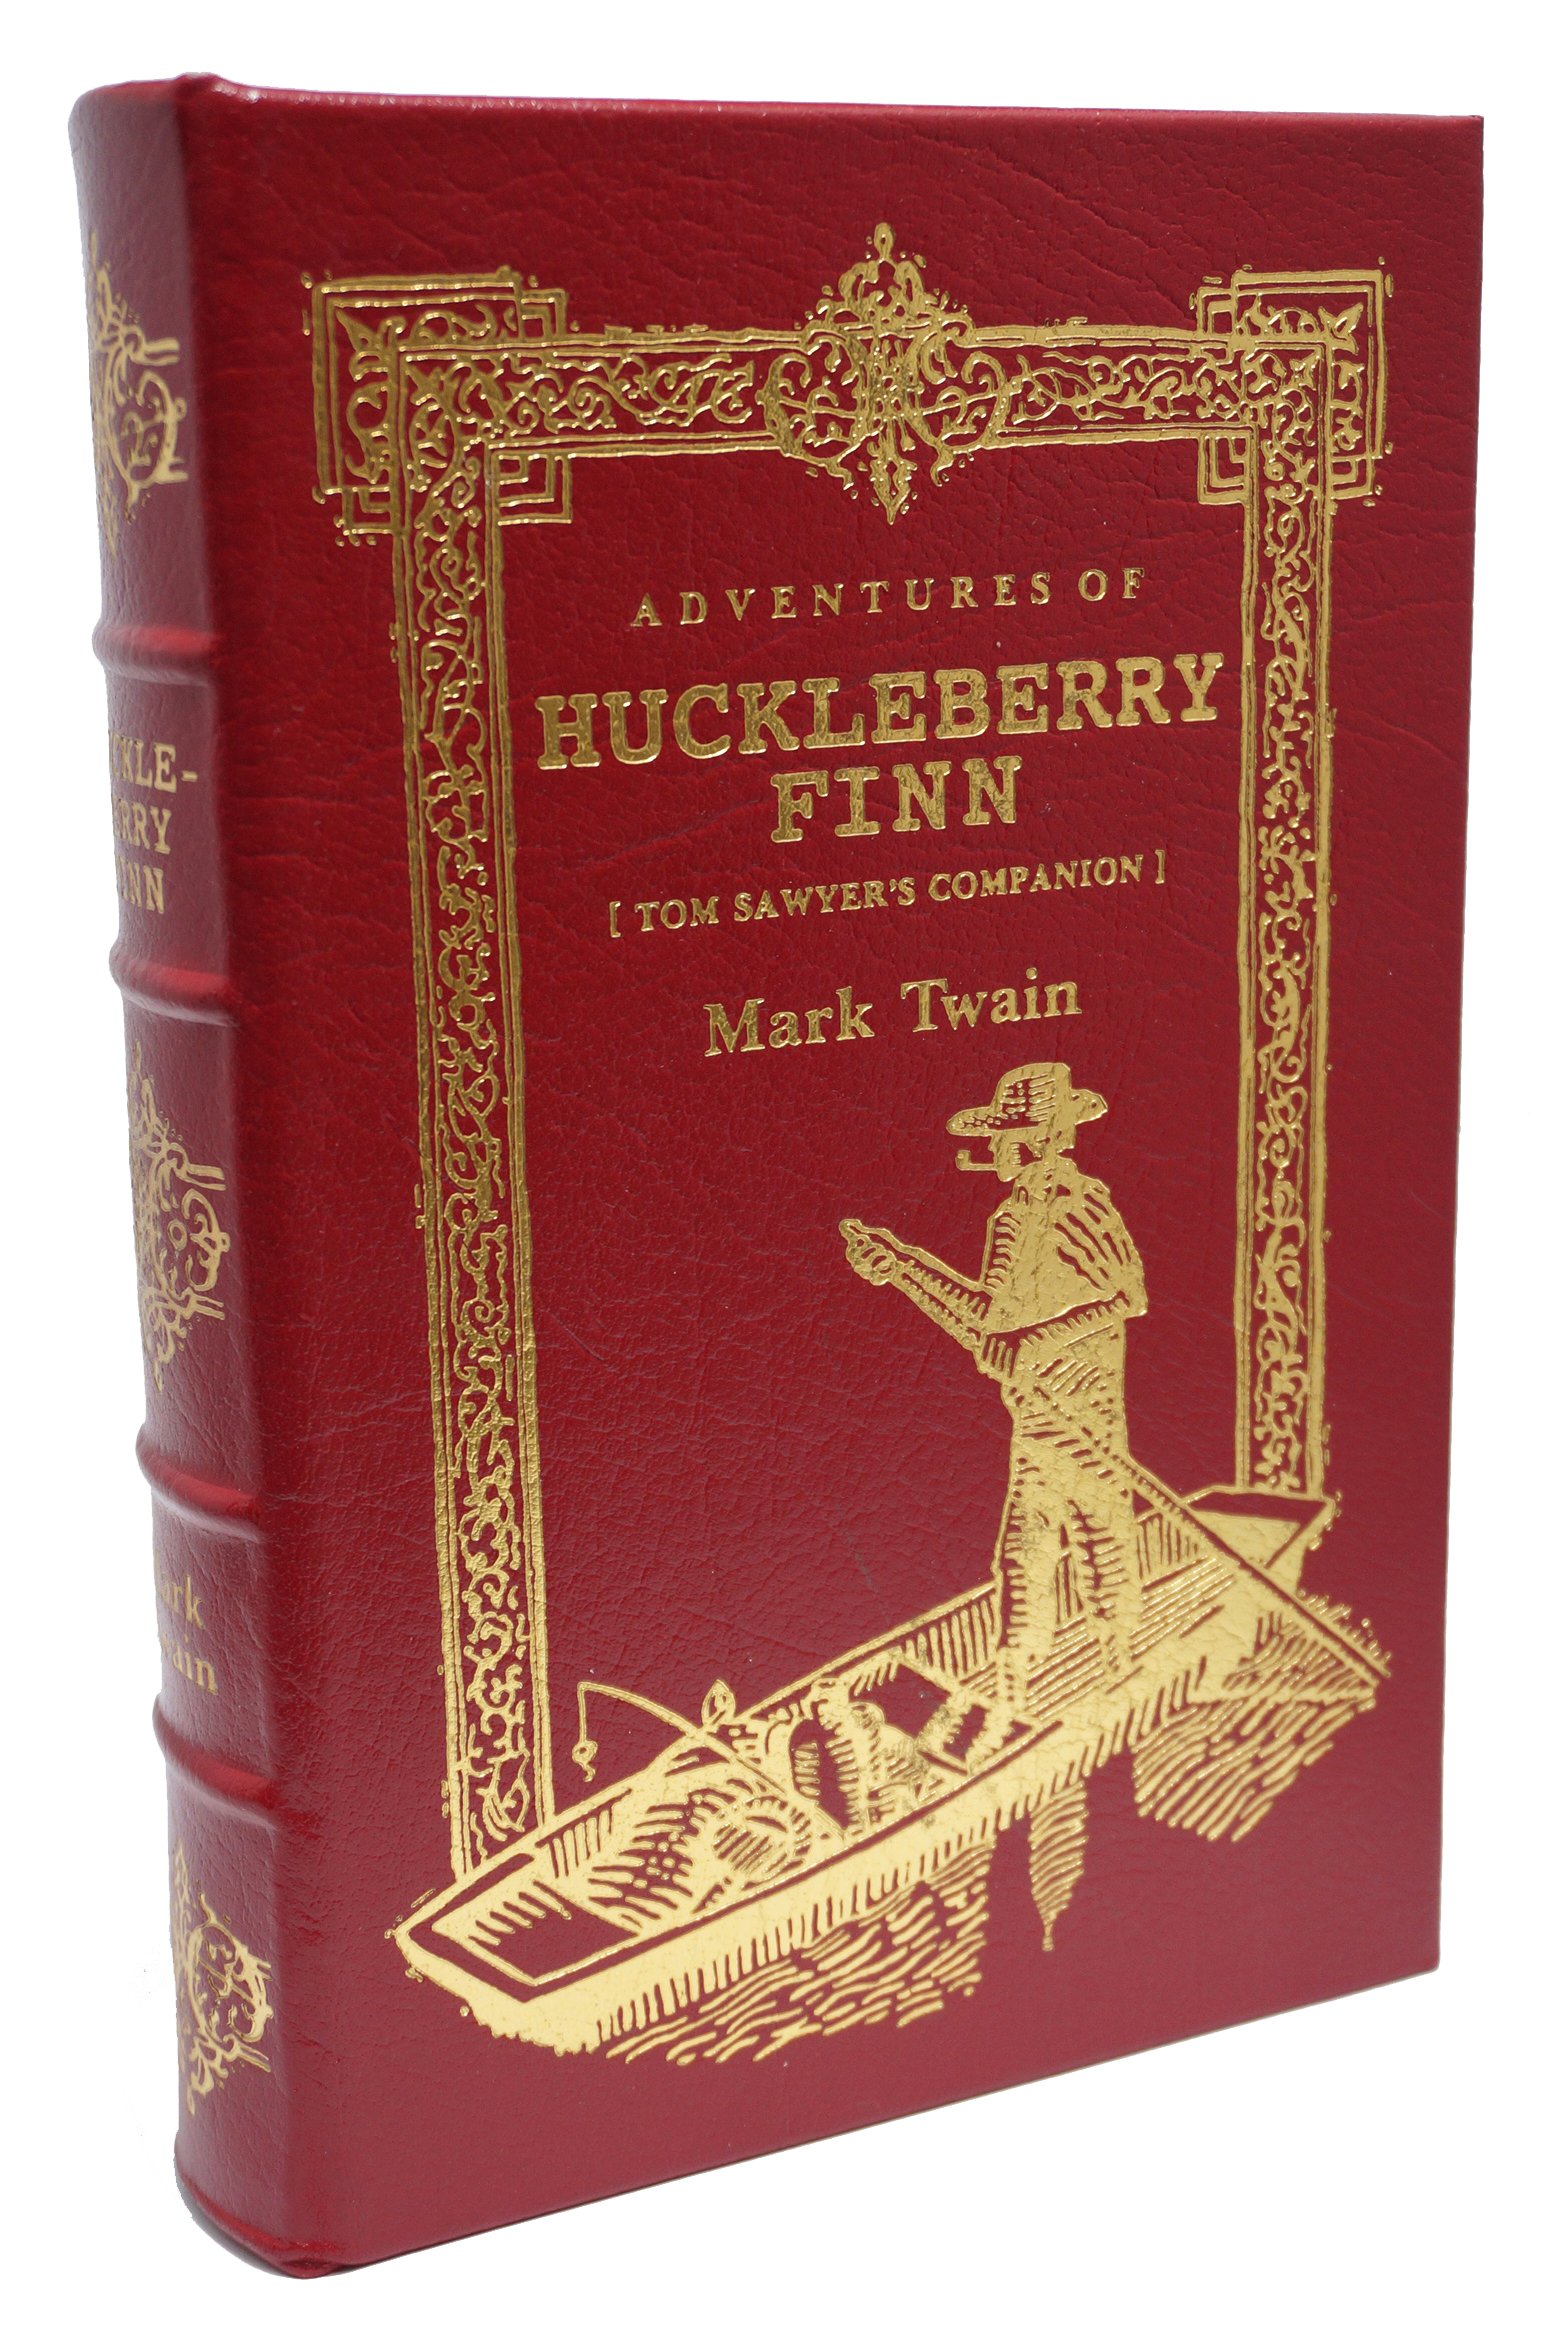 ADVENTURES OF HUCKLEBERRY FINN. Tom Sawyer's Companion. A Volume in The 100 (One Hundred) Greatest Books Ever Written., Twain, Mark